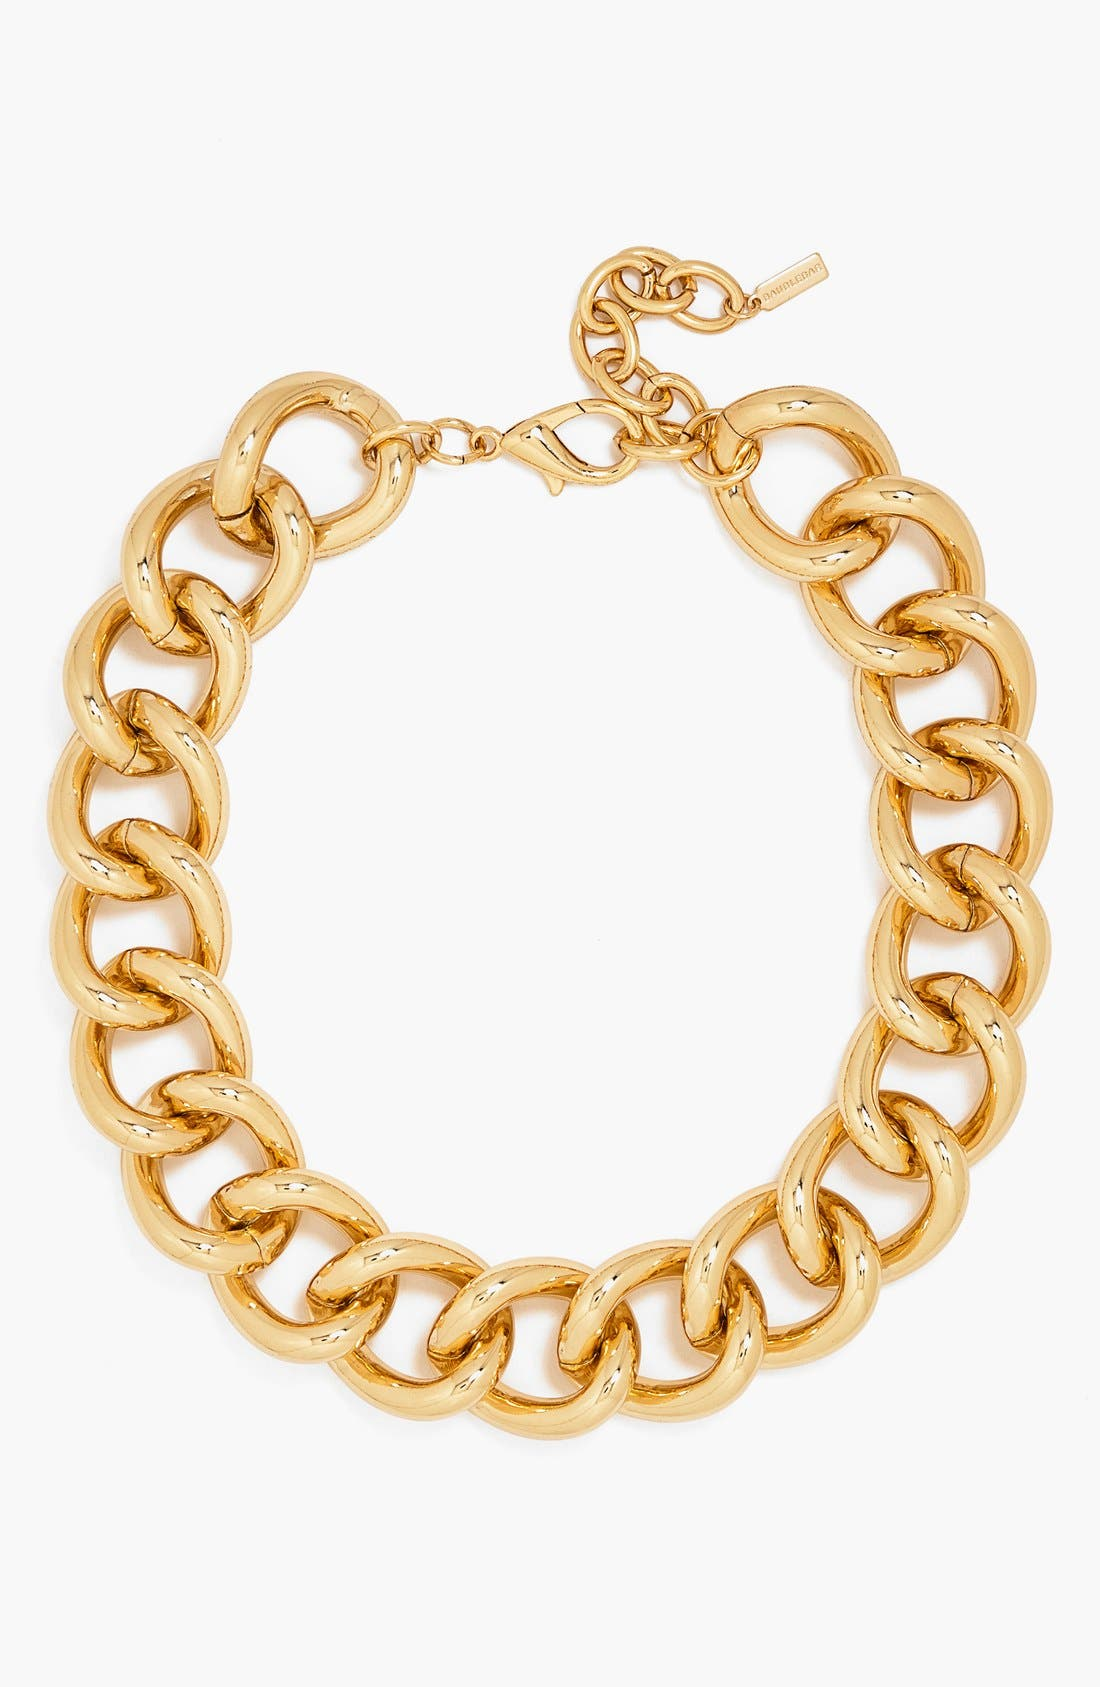 Main Image - BaubleBar Rolo Chain Link Collar Necklace